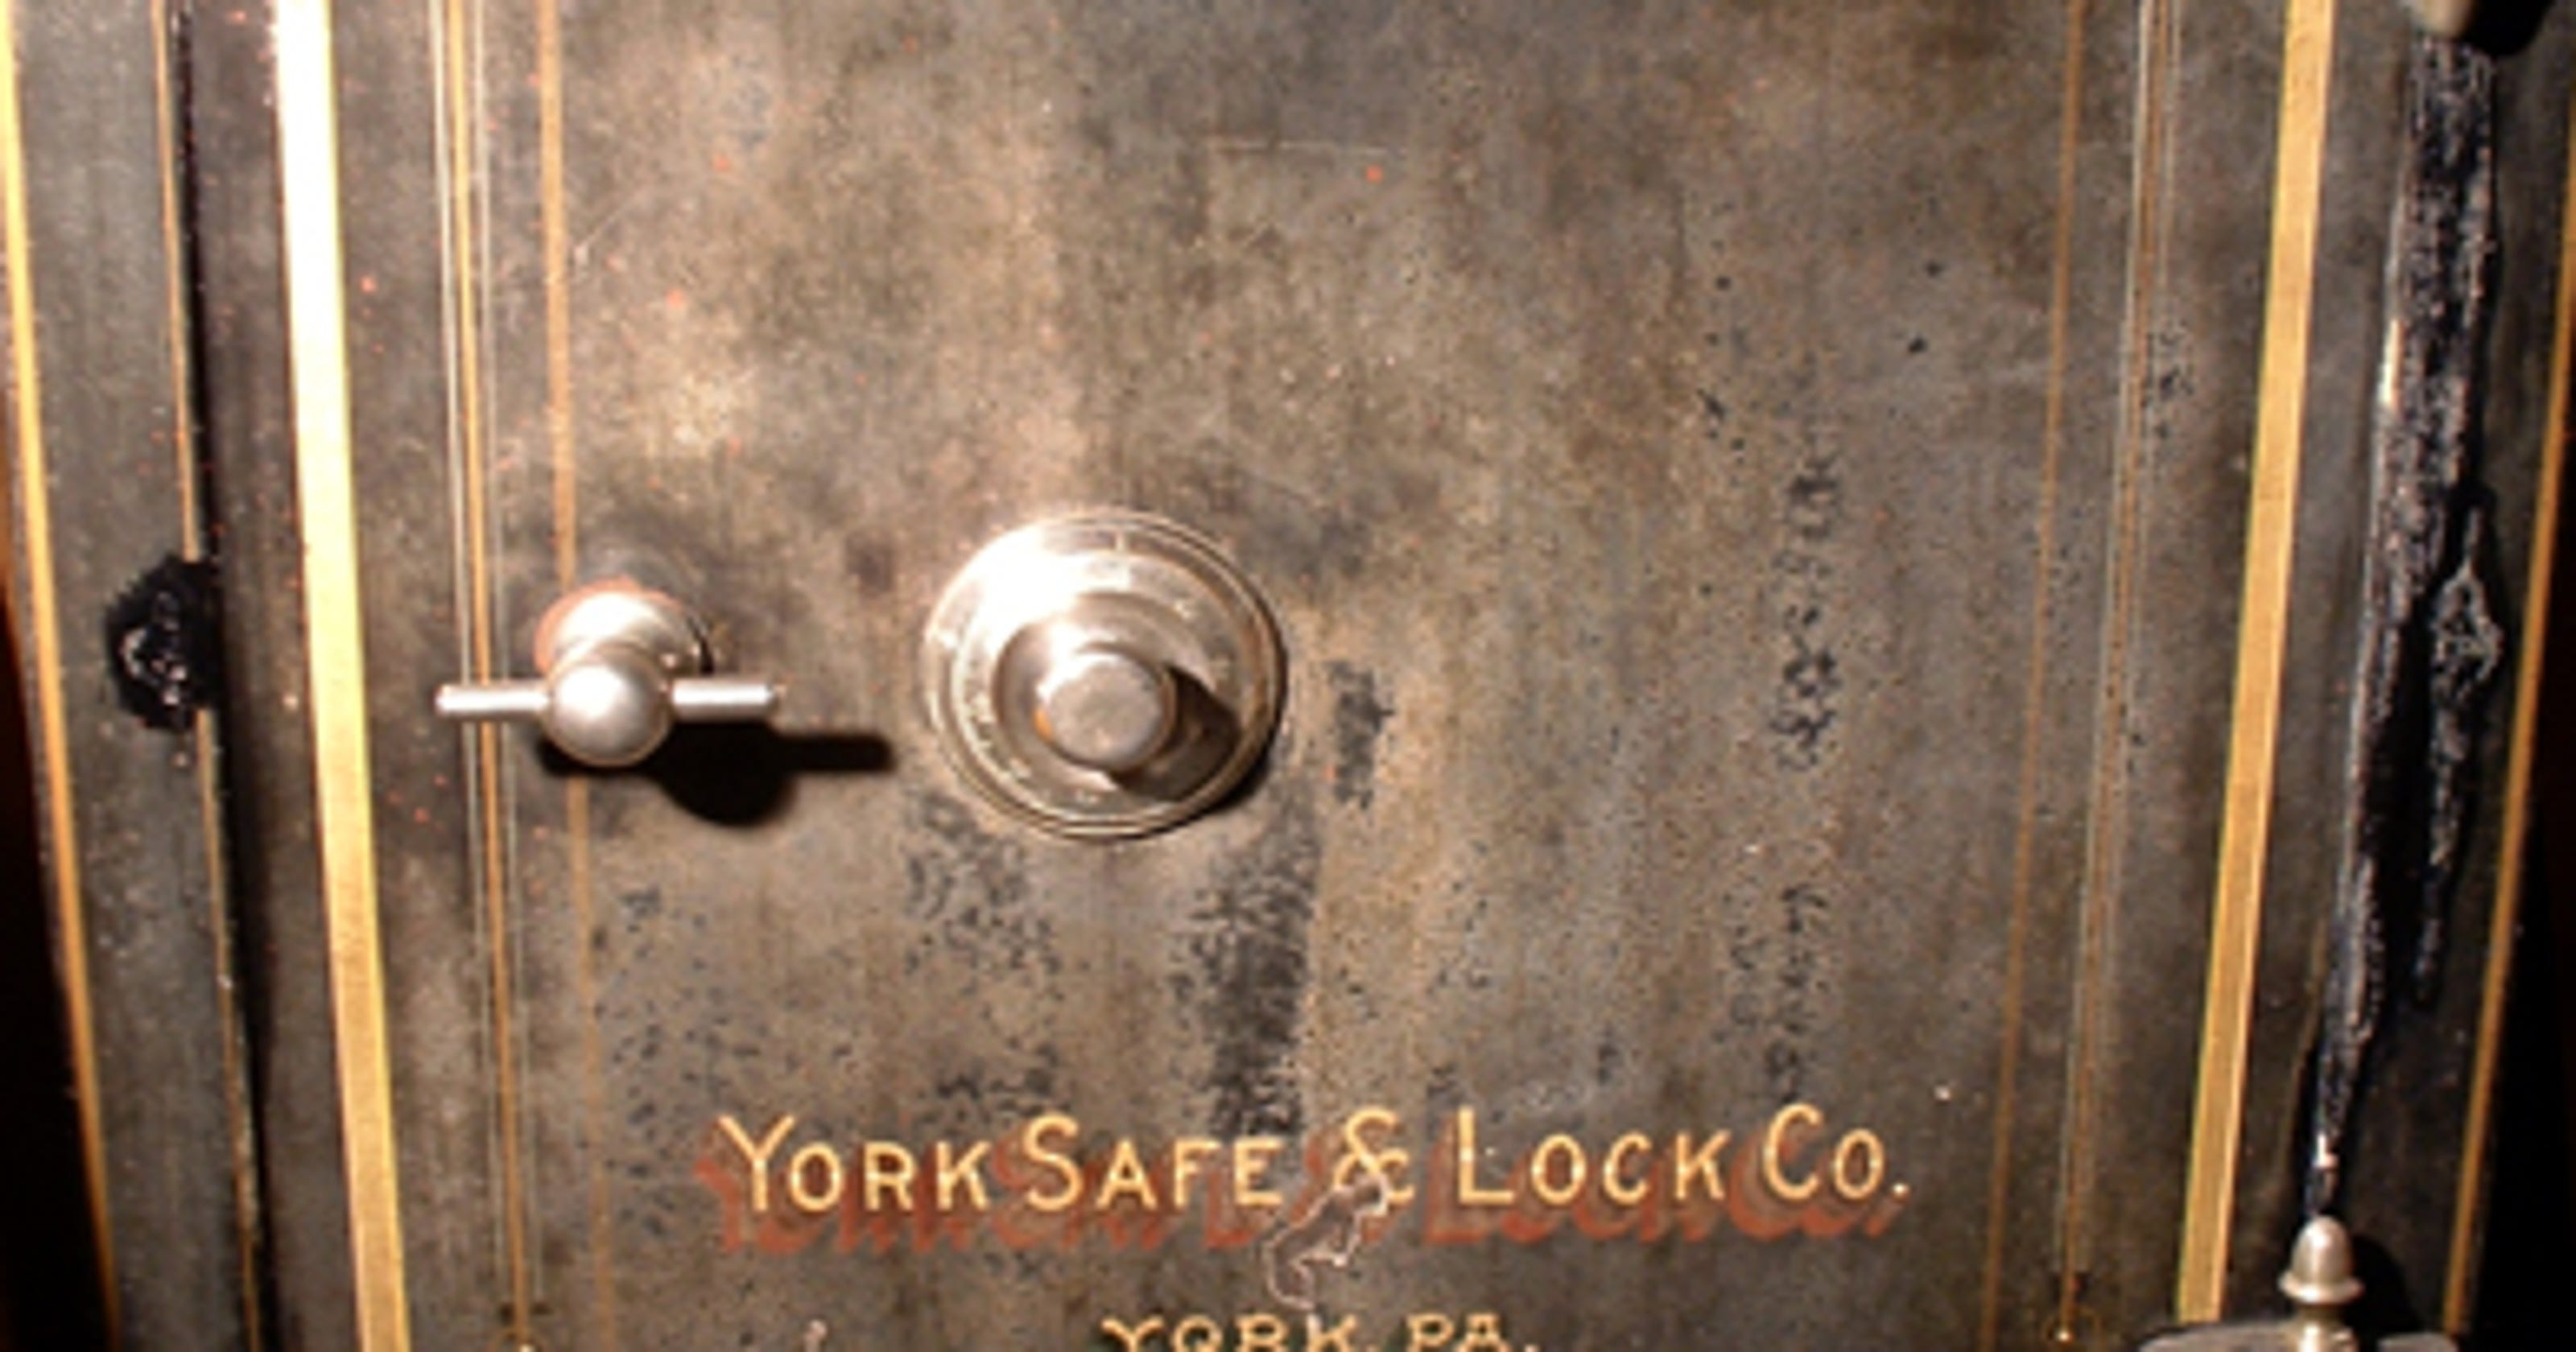 York Safe & Lock: How can I find information on my York-made